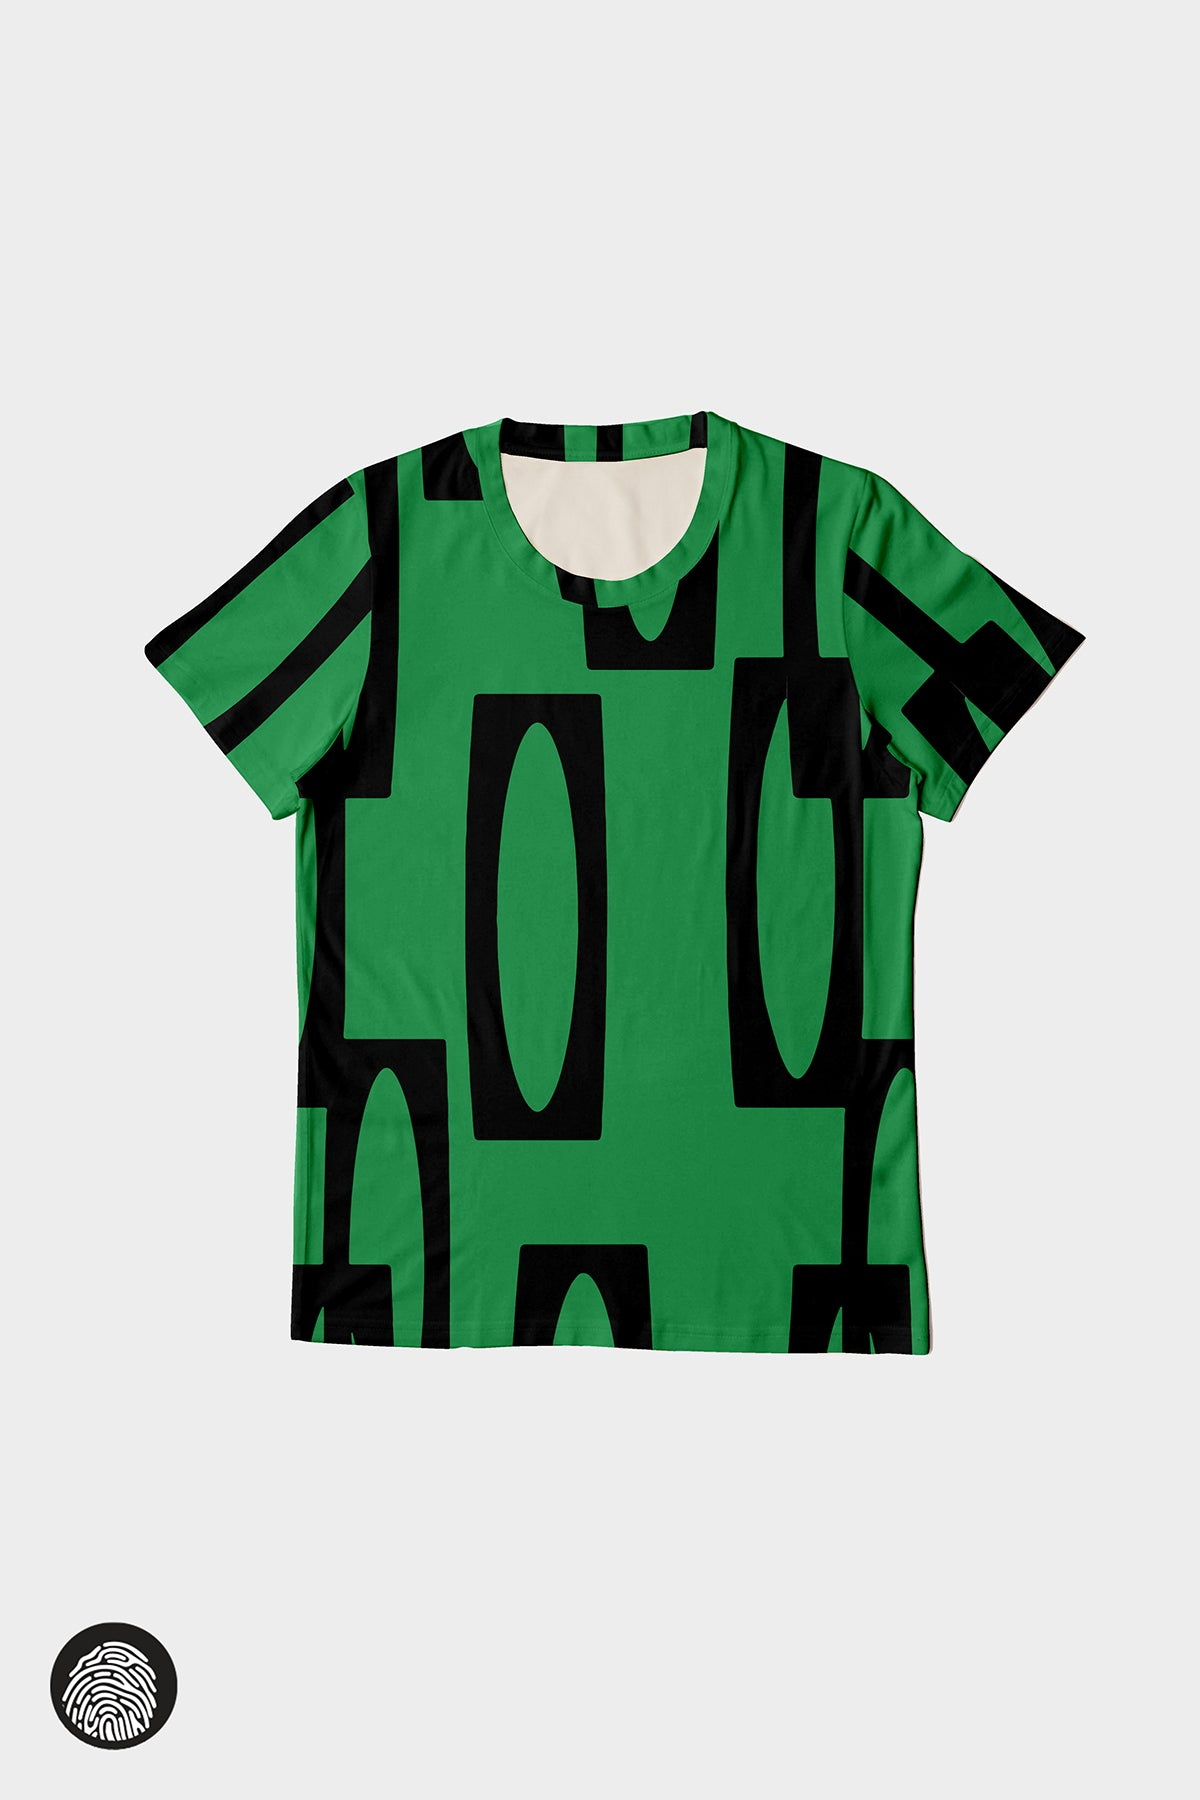 CREW NECK T-SHIRT / ENITAN - EWE | Lola Faturoti Loves